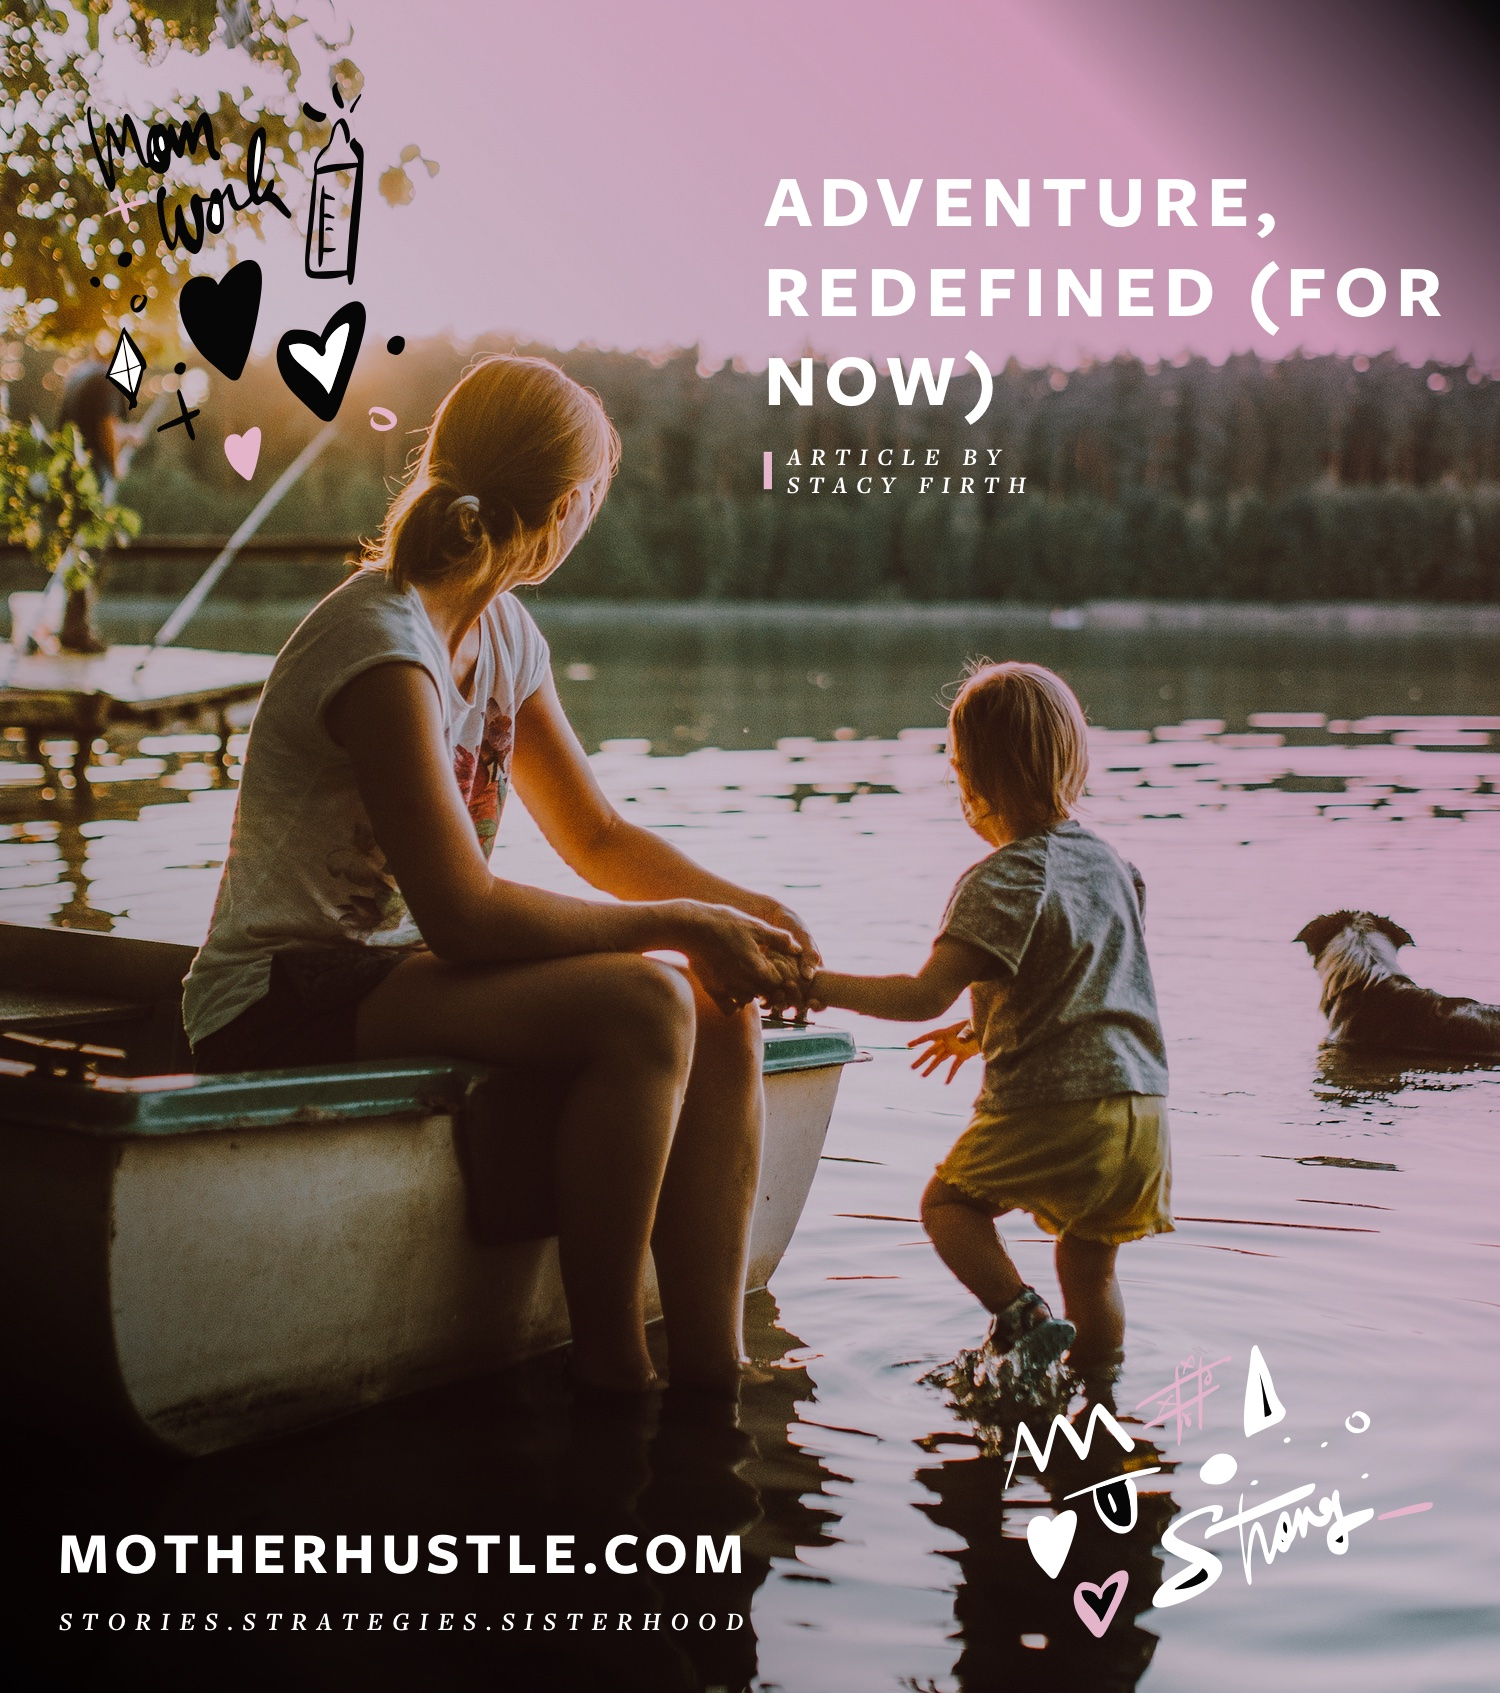 Adventure, Redefined (For Now) - by Stacy Firth for MotherHustle